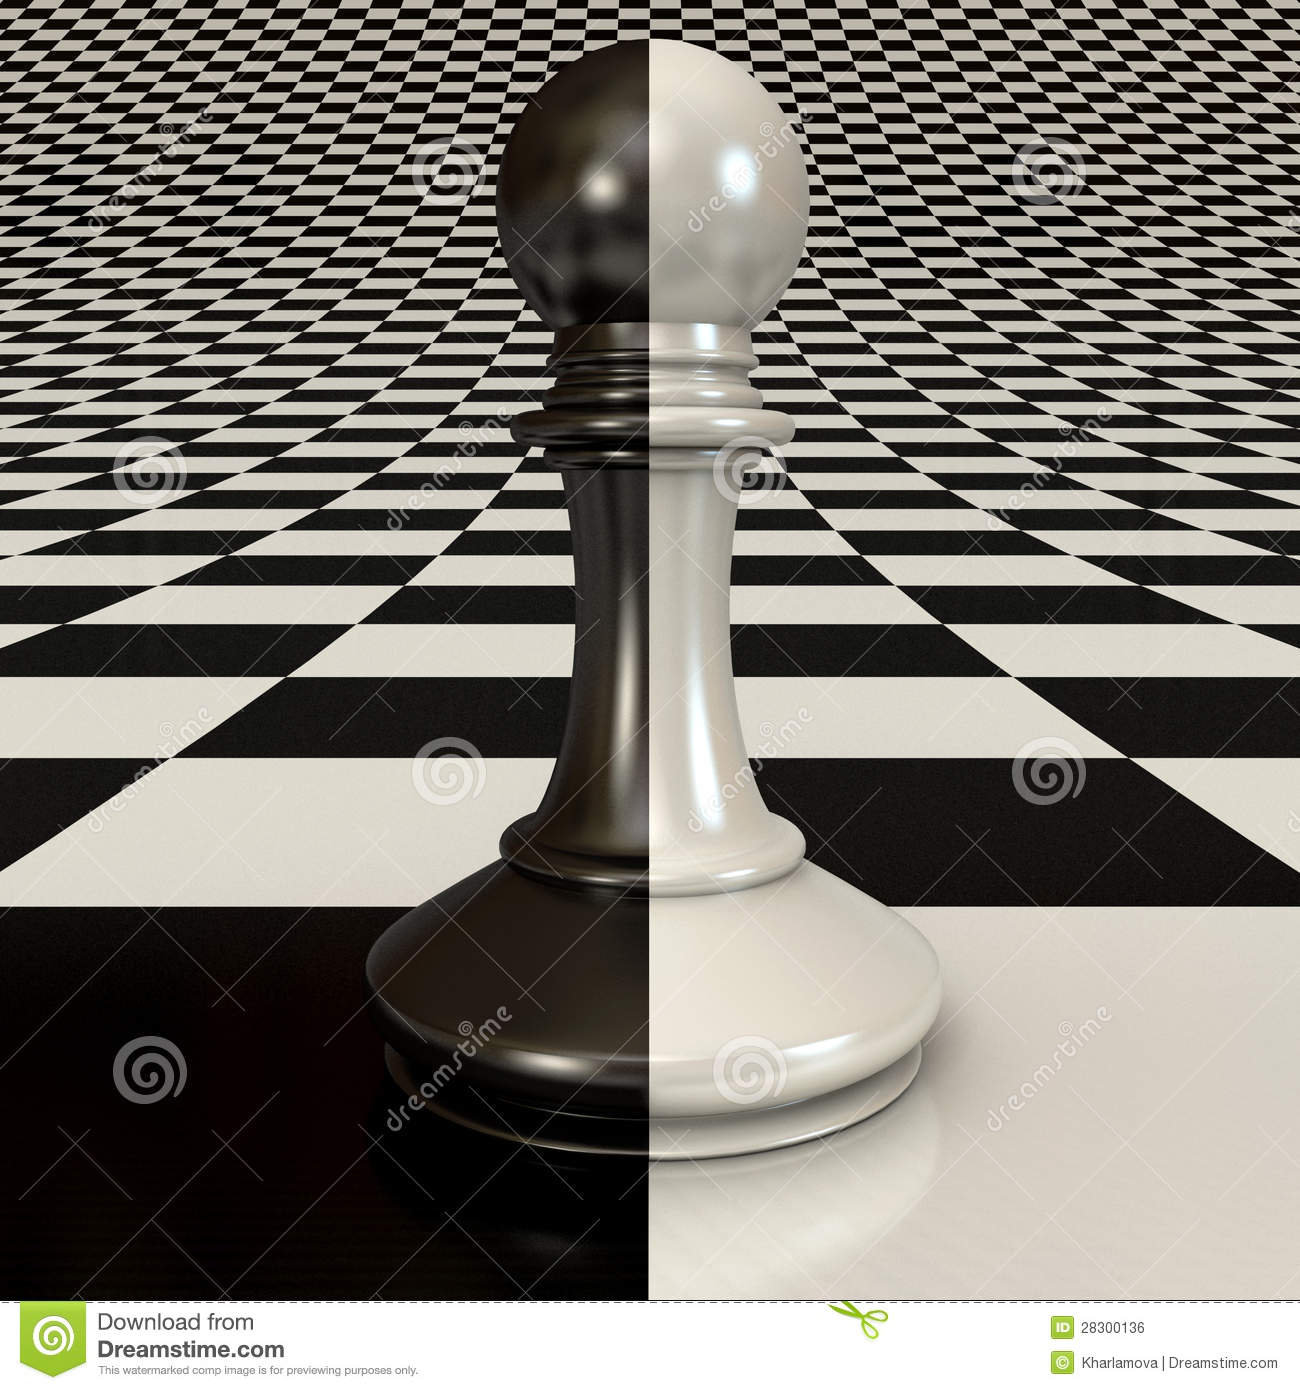 free illustration chessboard render - photo #7